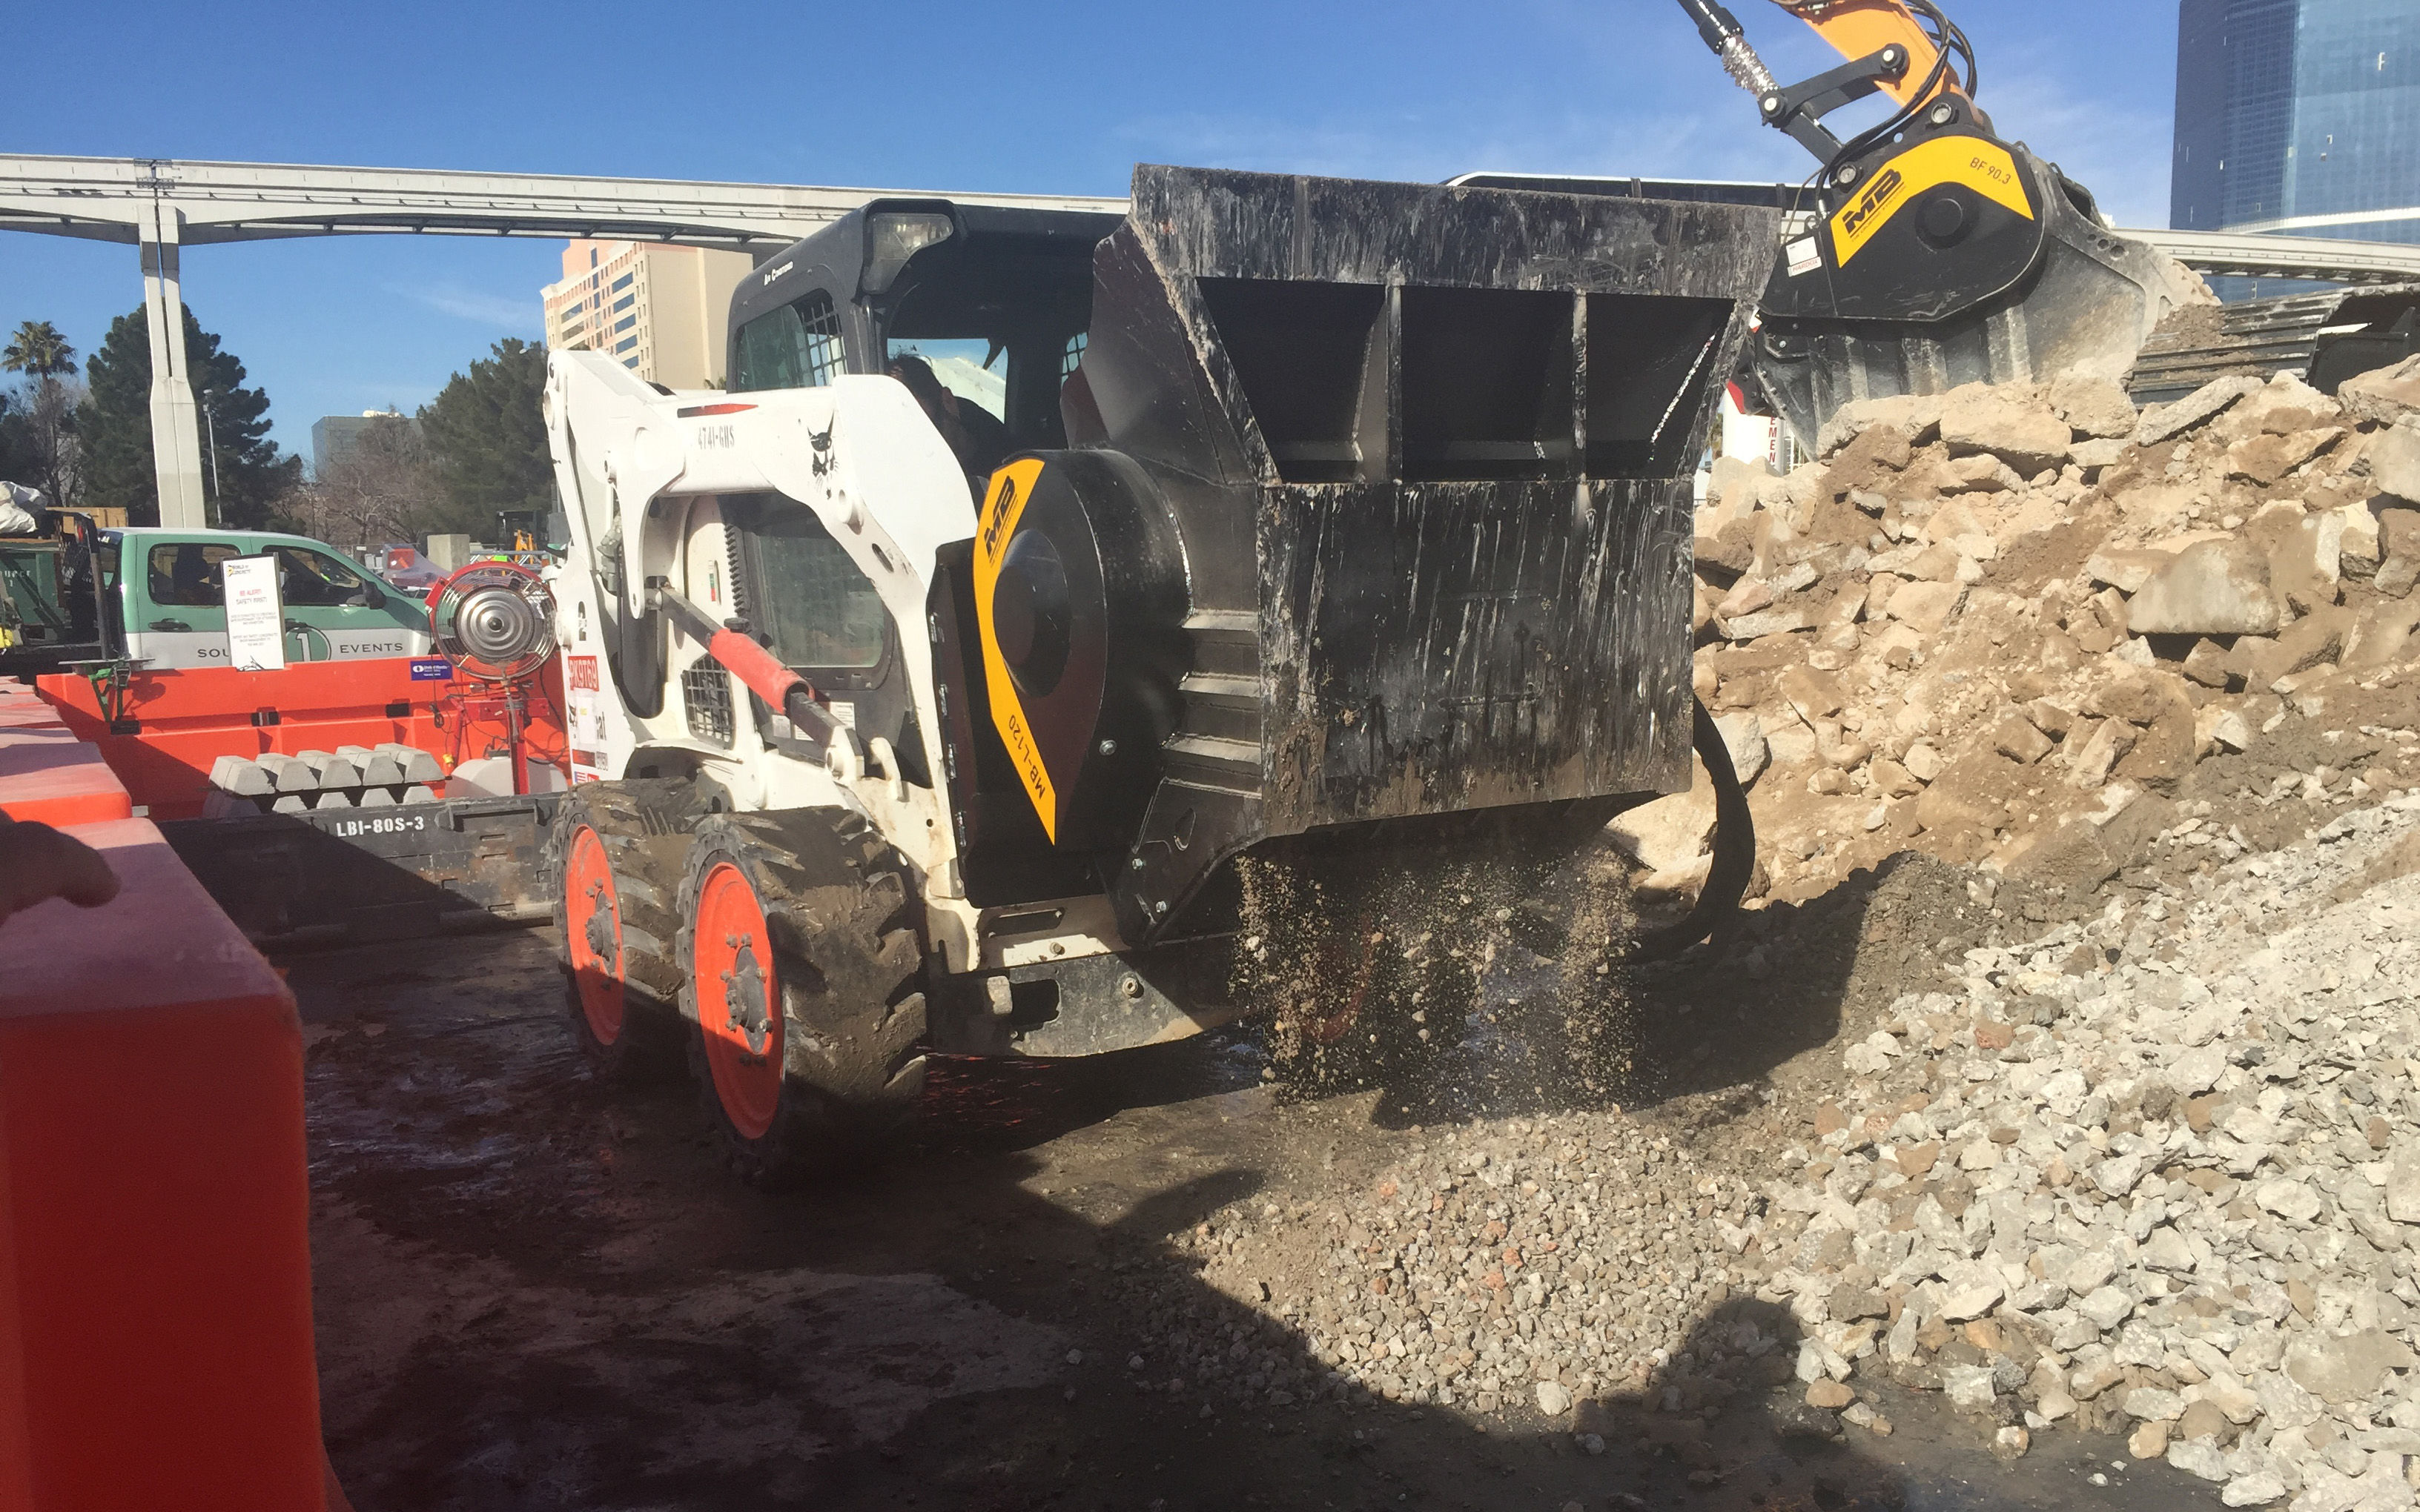 MB MB-L120 Crushing Attachment